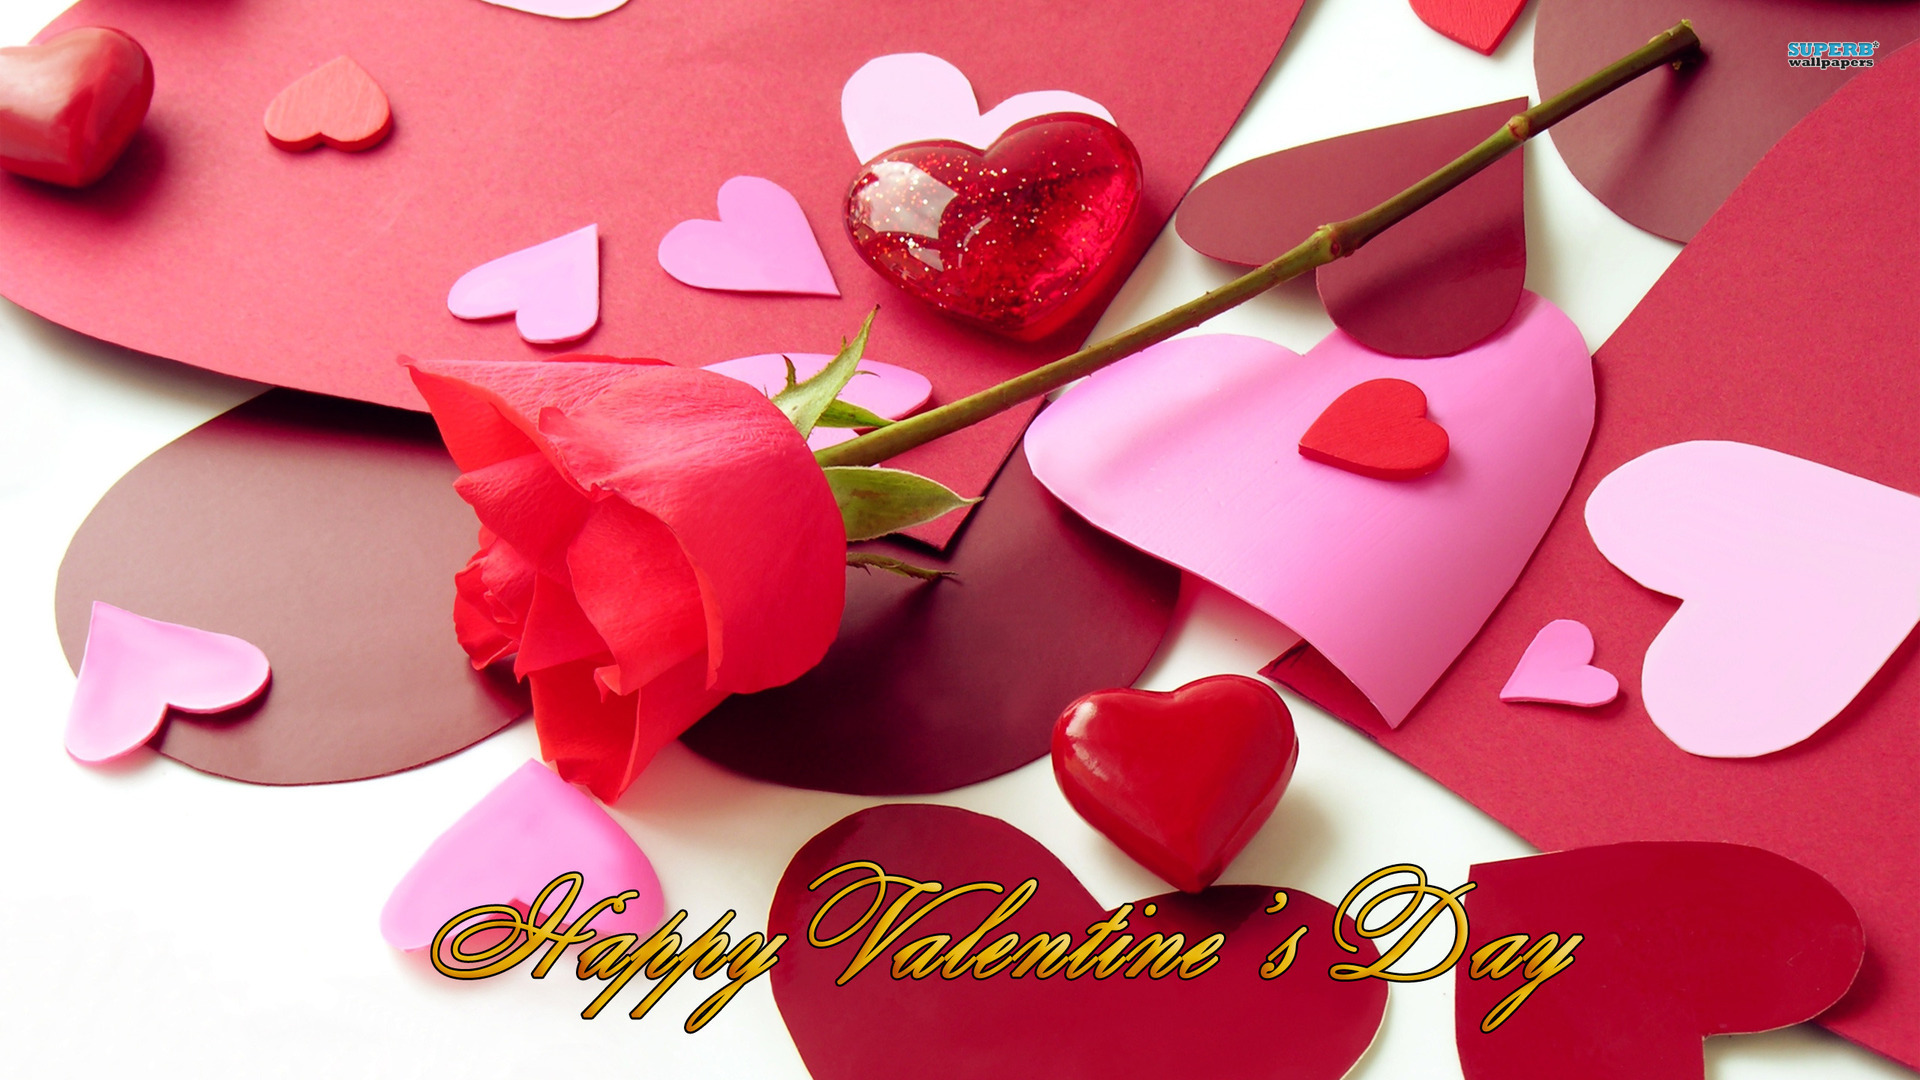 40+ mind-blowing valentine's day special hd 1080i wallpapers you